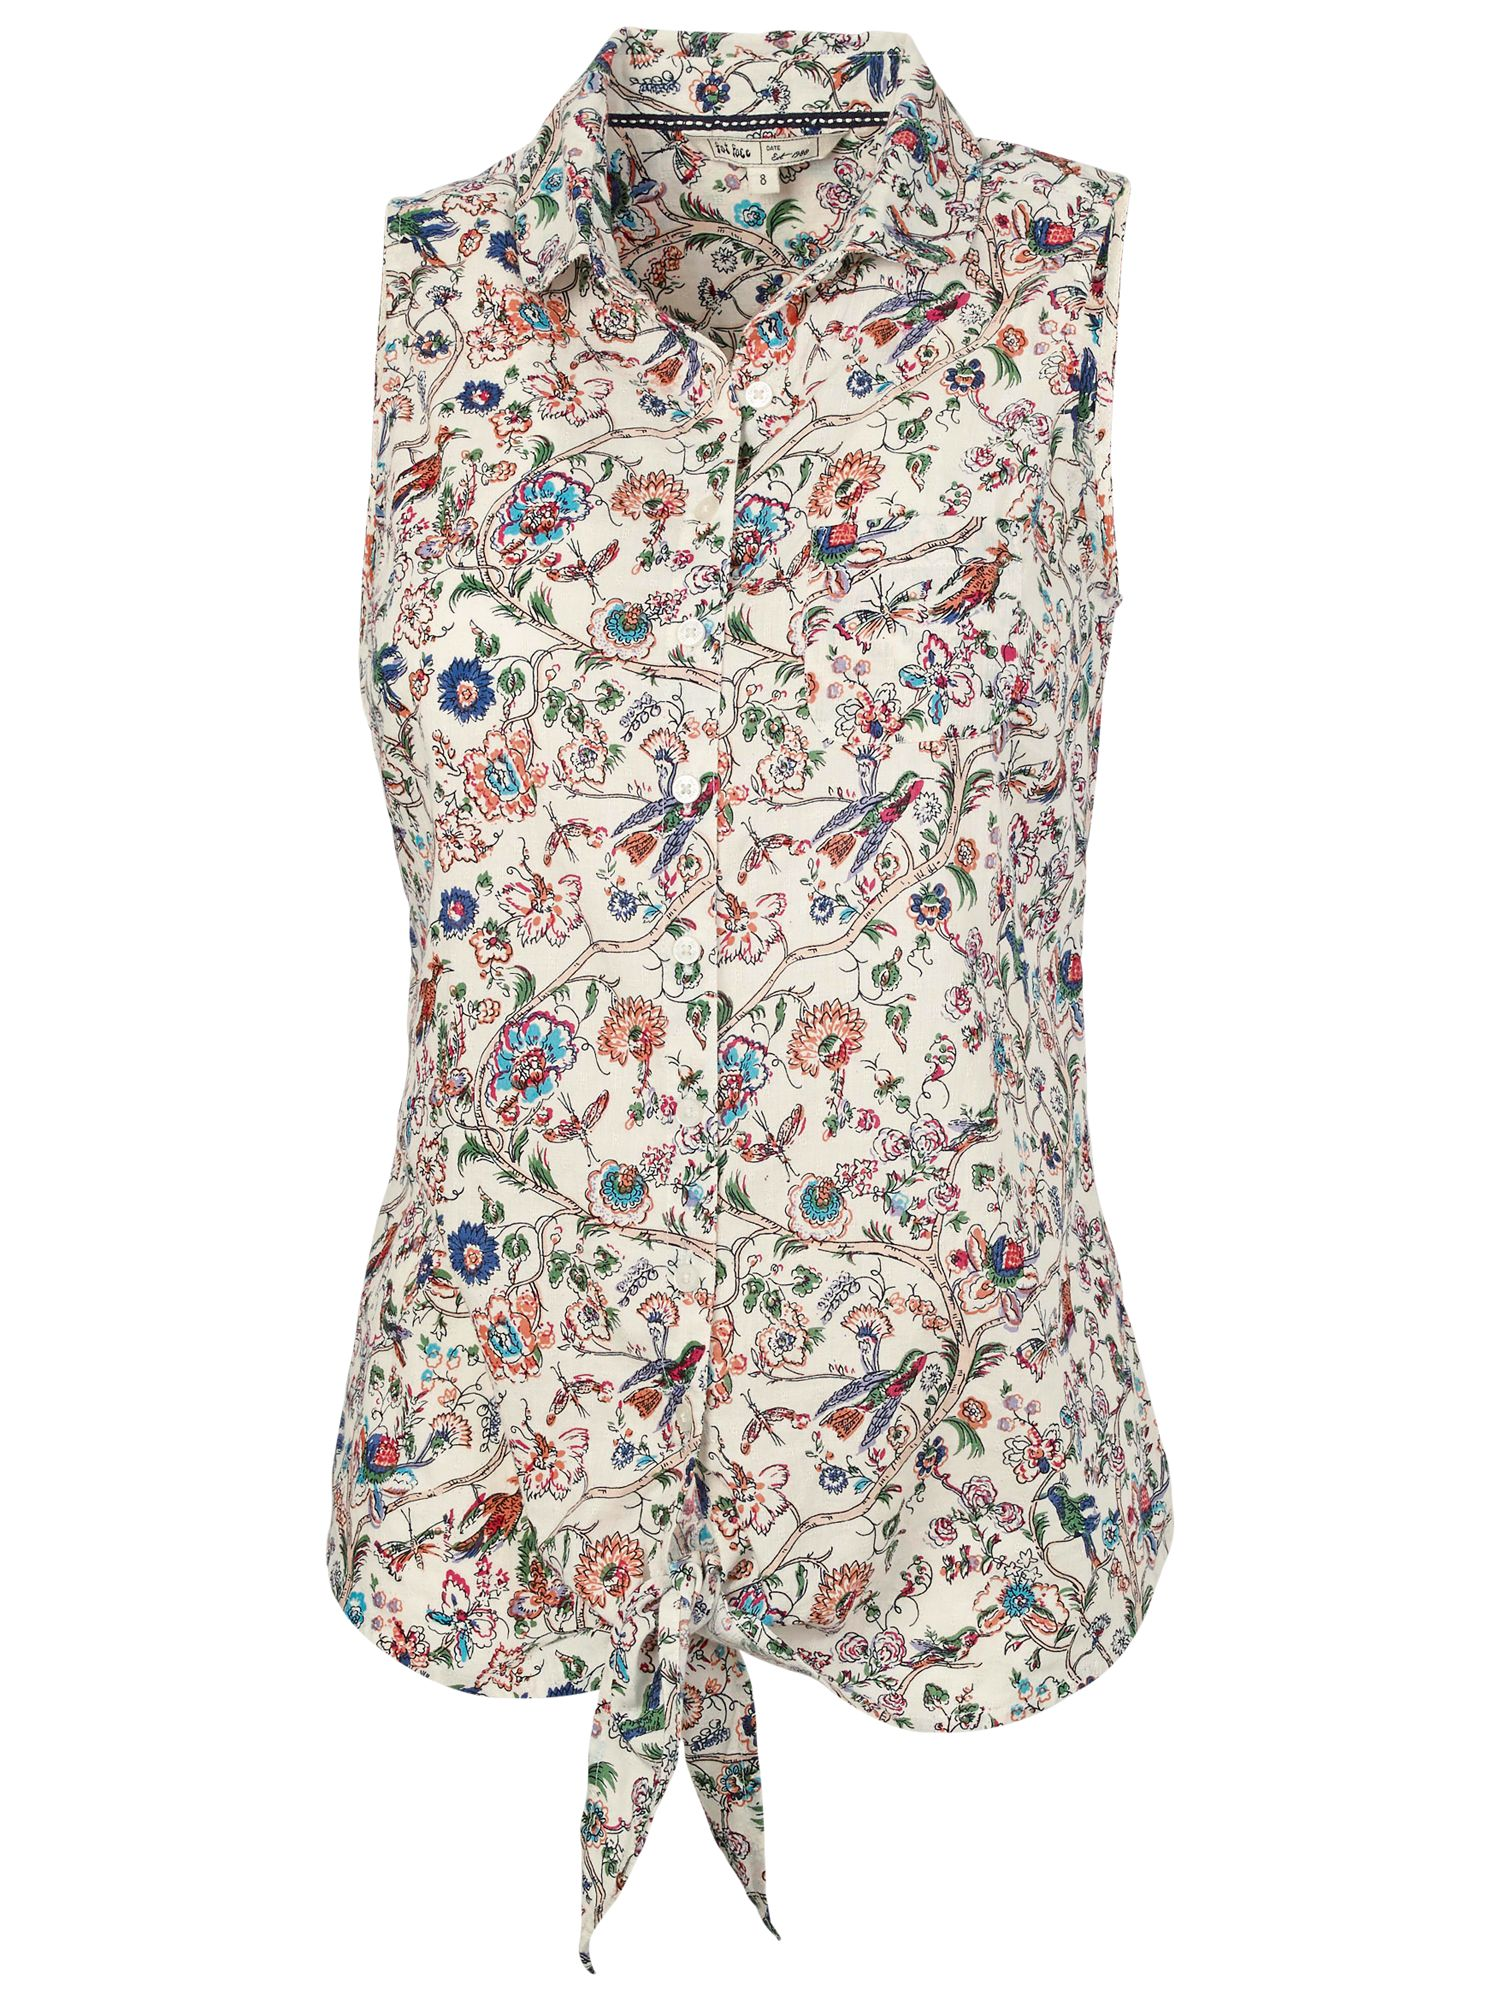 Fat Face Rizzo Garden Floral Shirt, Natural By Fat Face